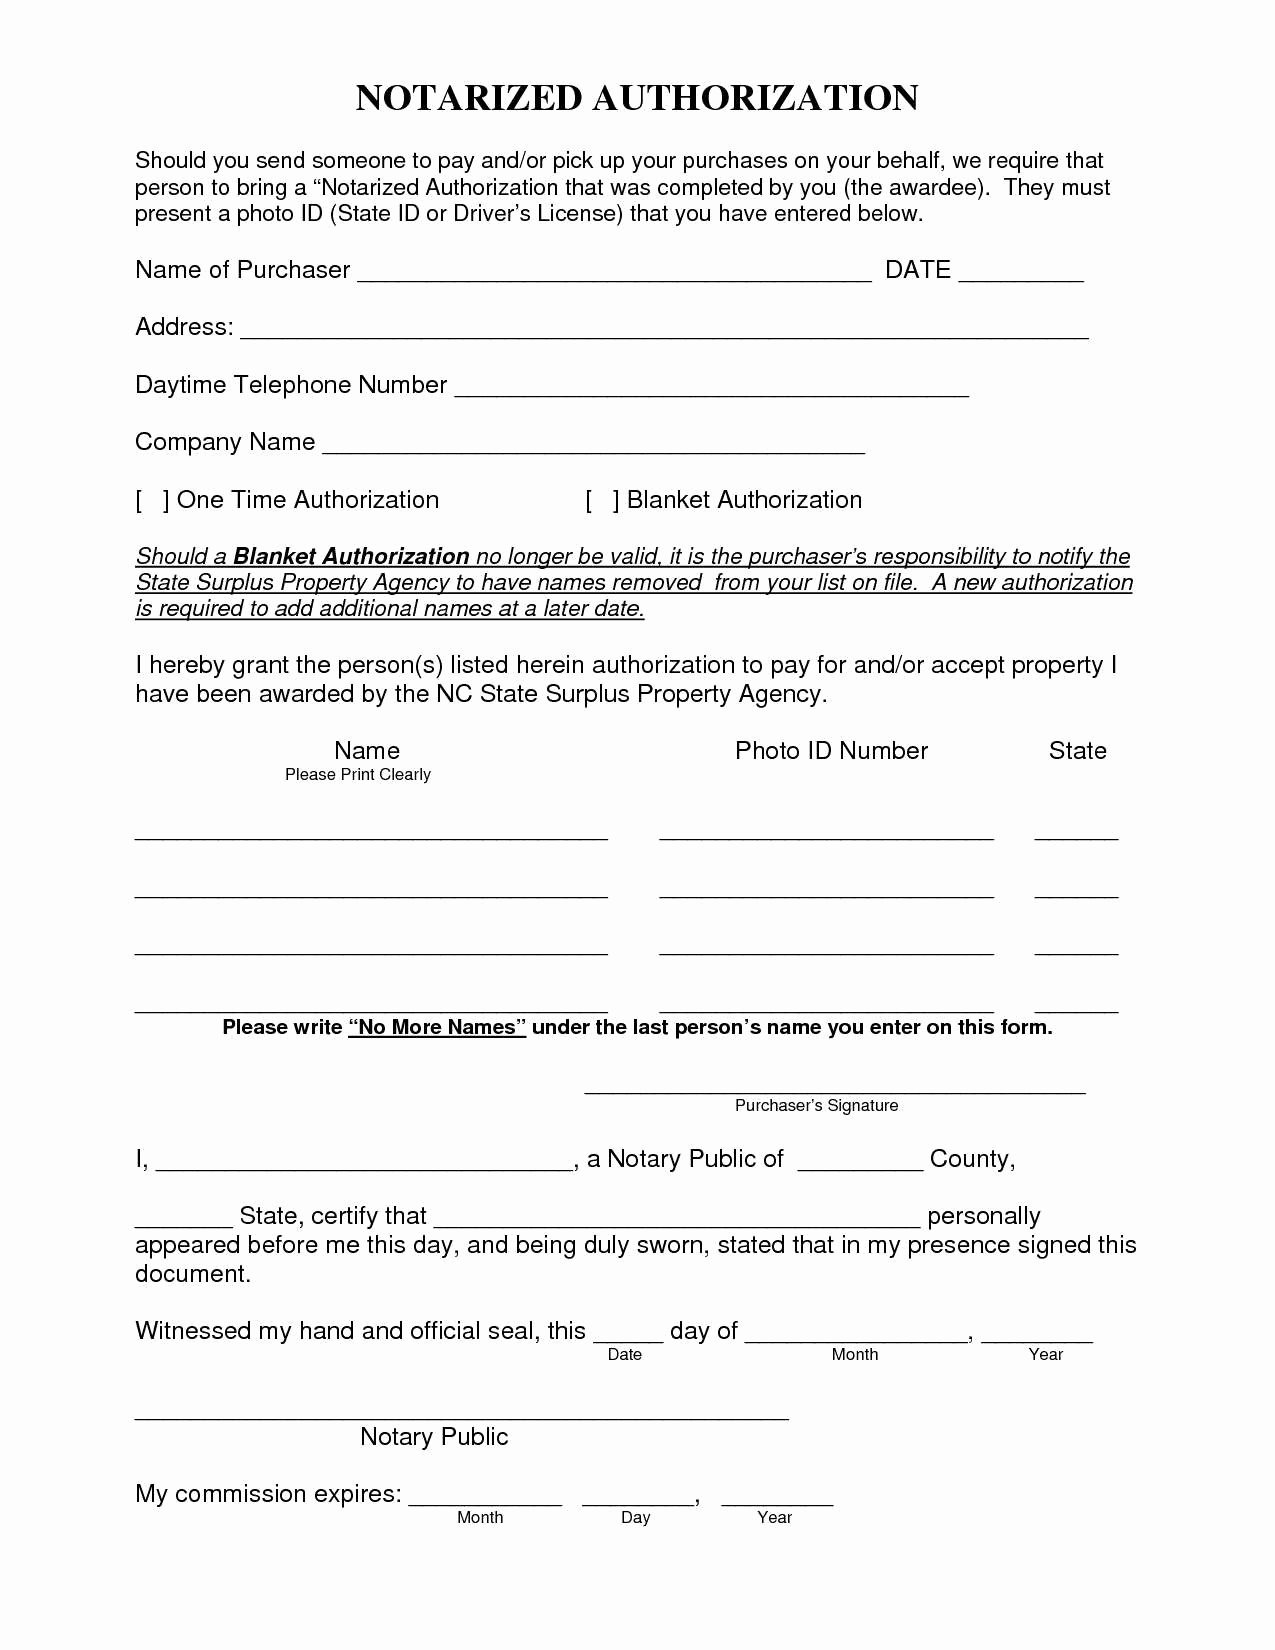 Sample Joint Custody Agreements Best Of Notarized Custody Agreement Template Special 11 Best Child